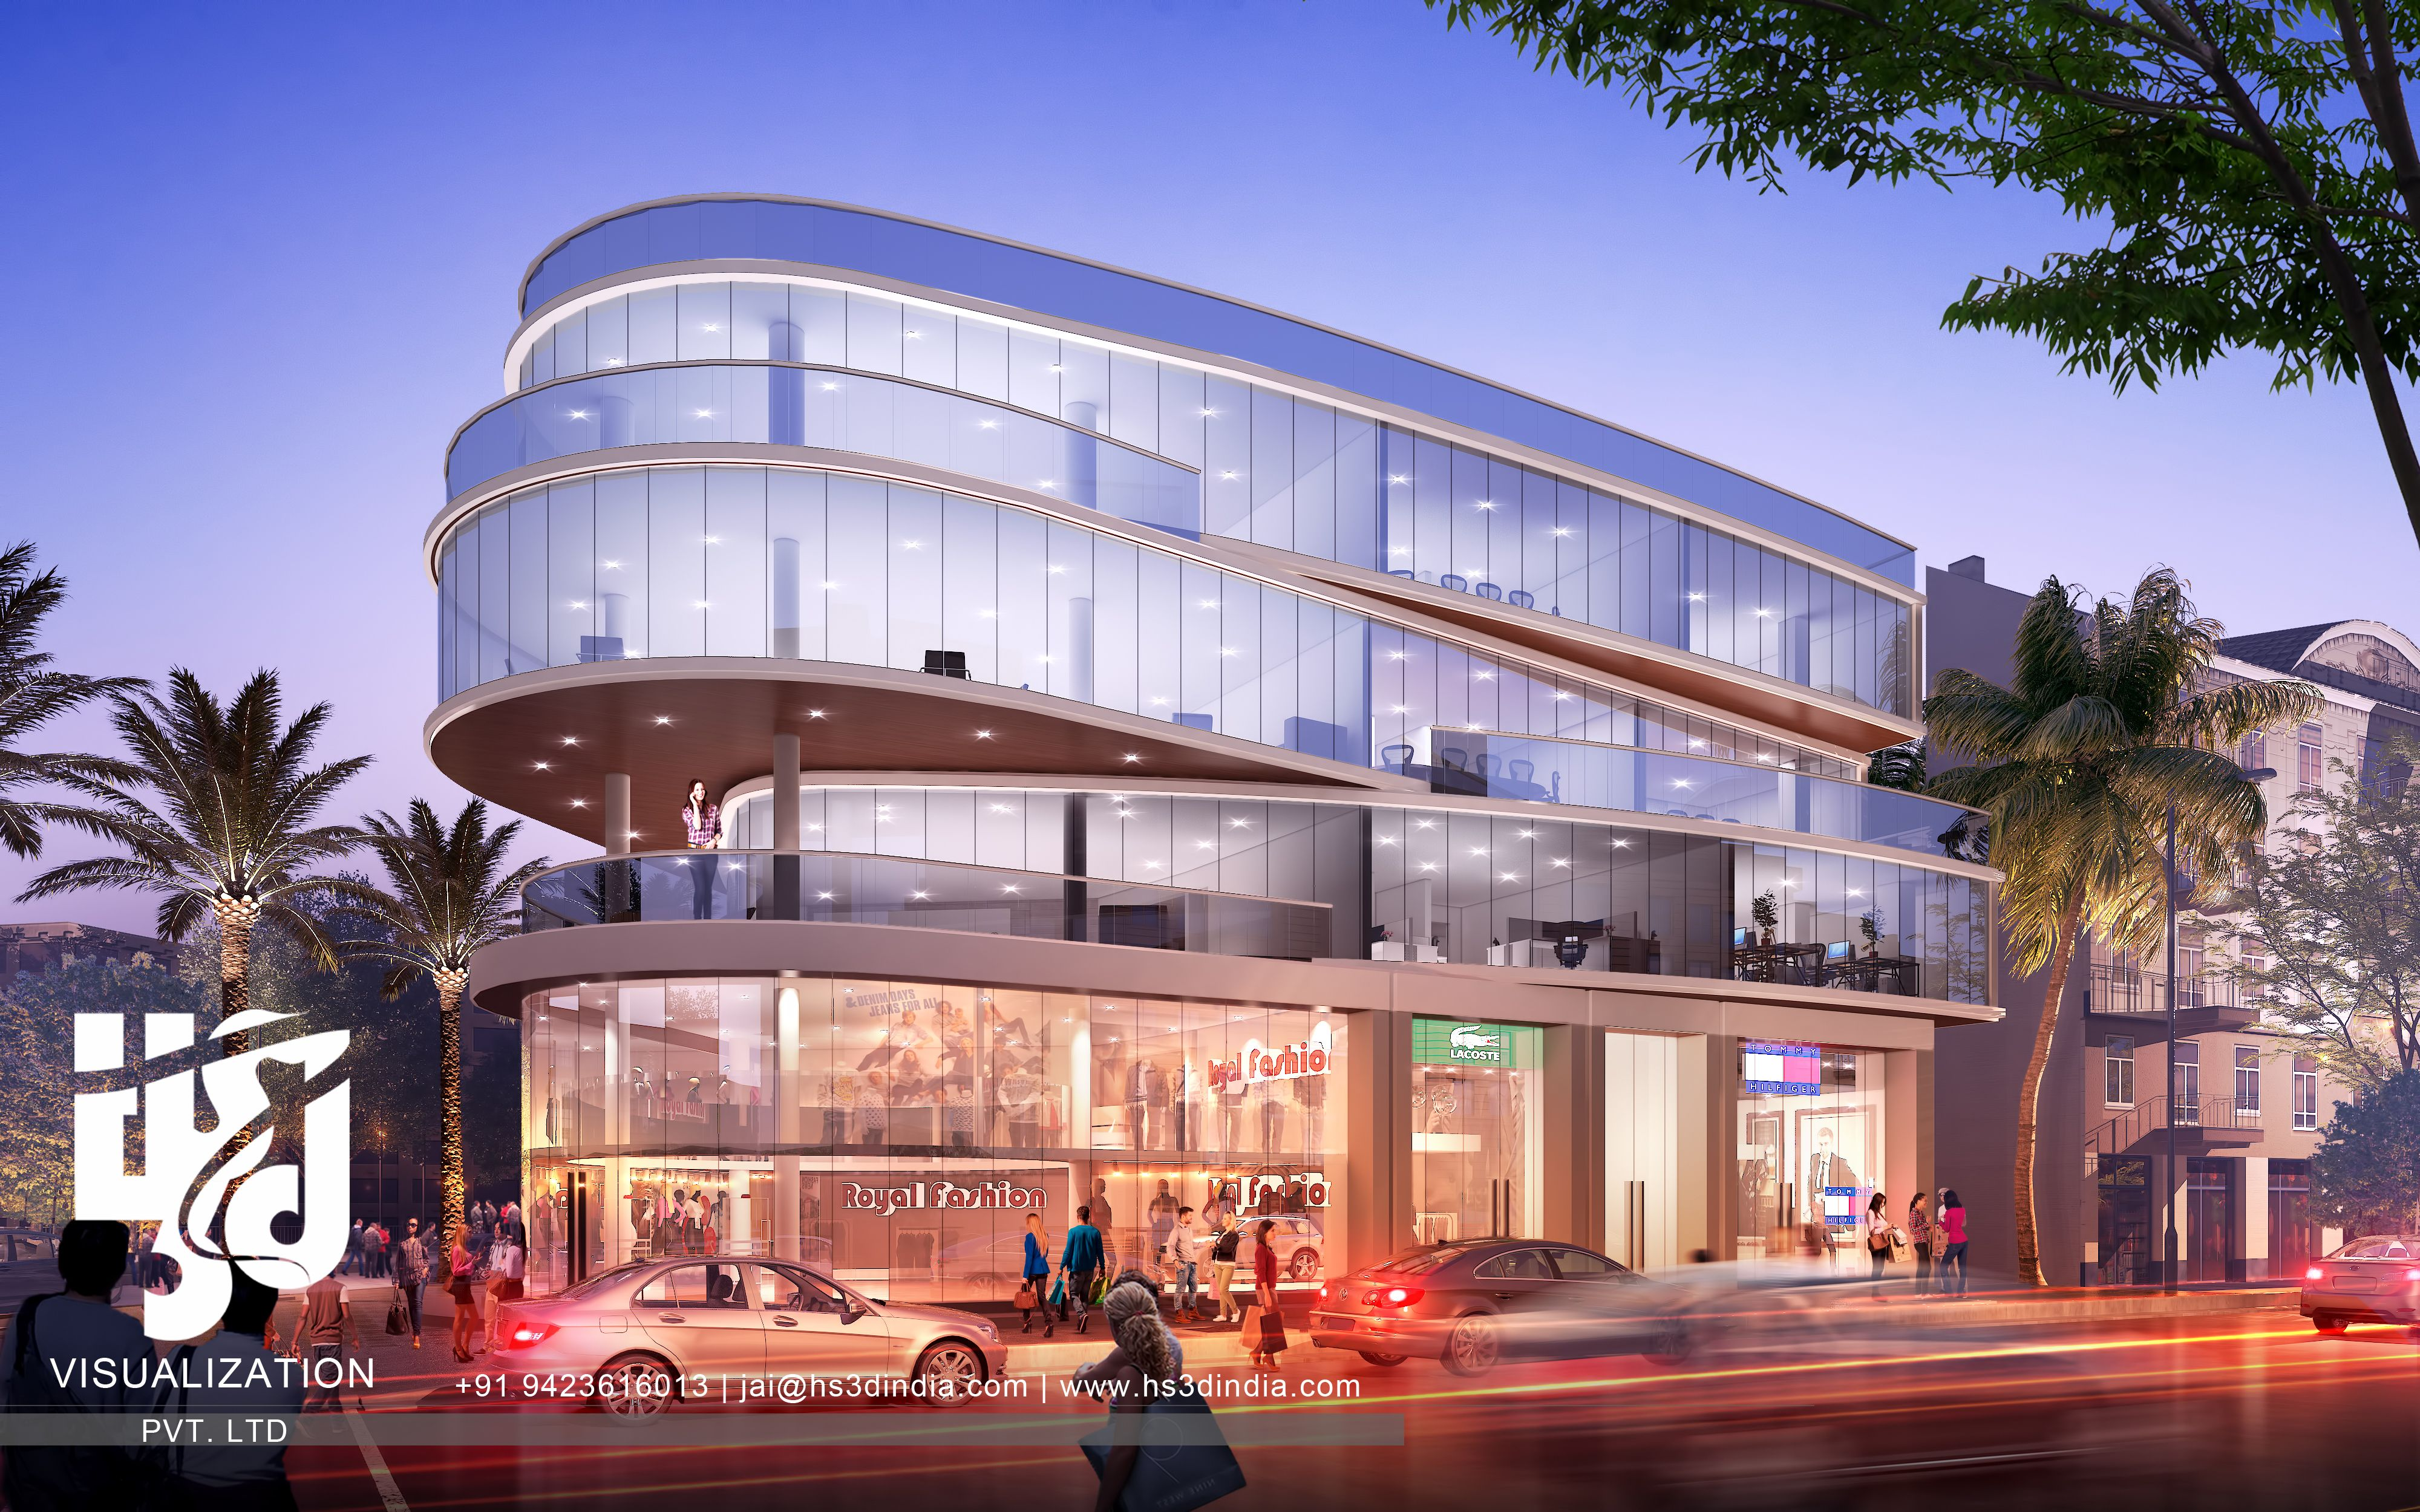 3d Modern Shopping Mall Exterior Elevation 3d Rendering By Hs3d India Prem Singh Pulse Lin Exterior Rendering Exterior Design 3d Architectural Rendering